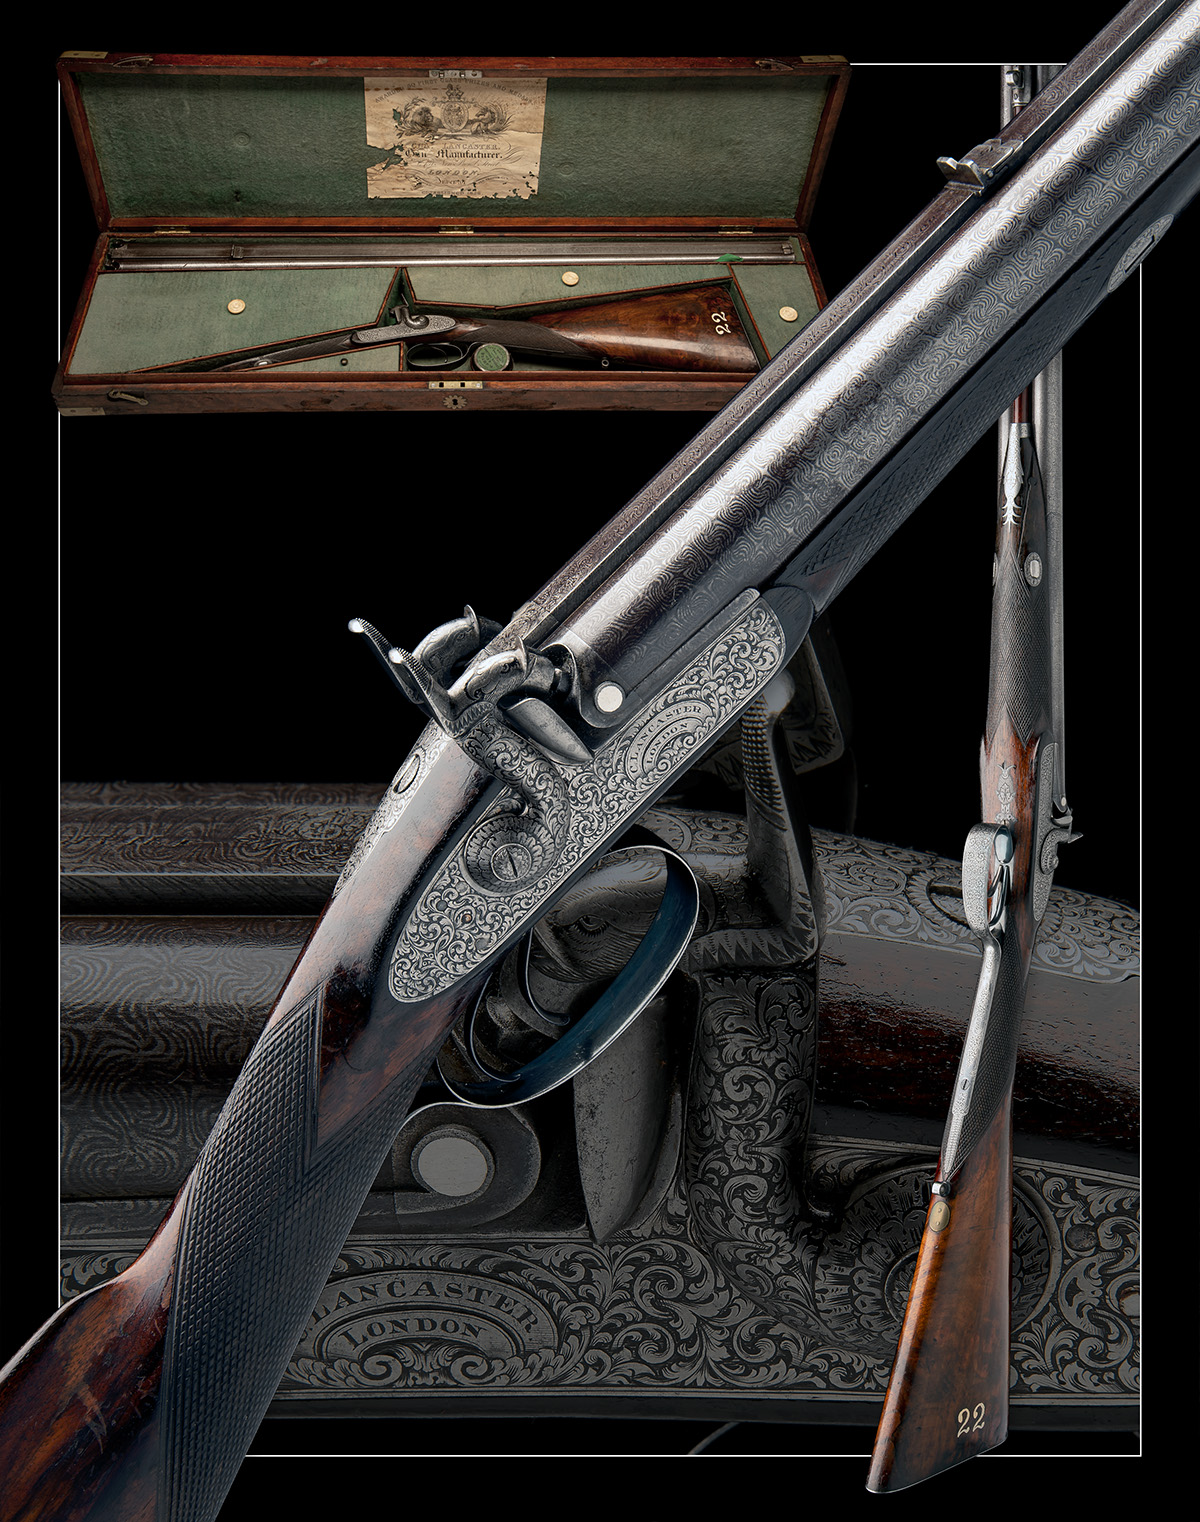 CHARLES LANCASTER, LONDON A CASED 12-BORE PERCUSSION DOUBLE-BARRELLED SPORTING-GUN, serial no. 2292, - Image 11 of 11